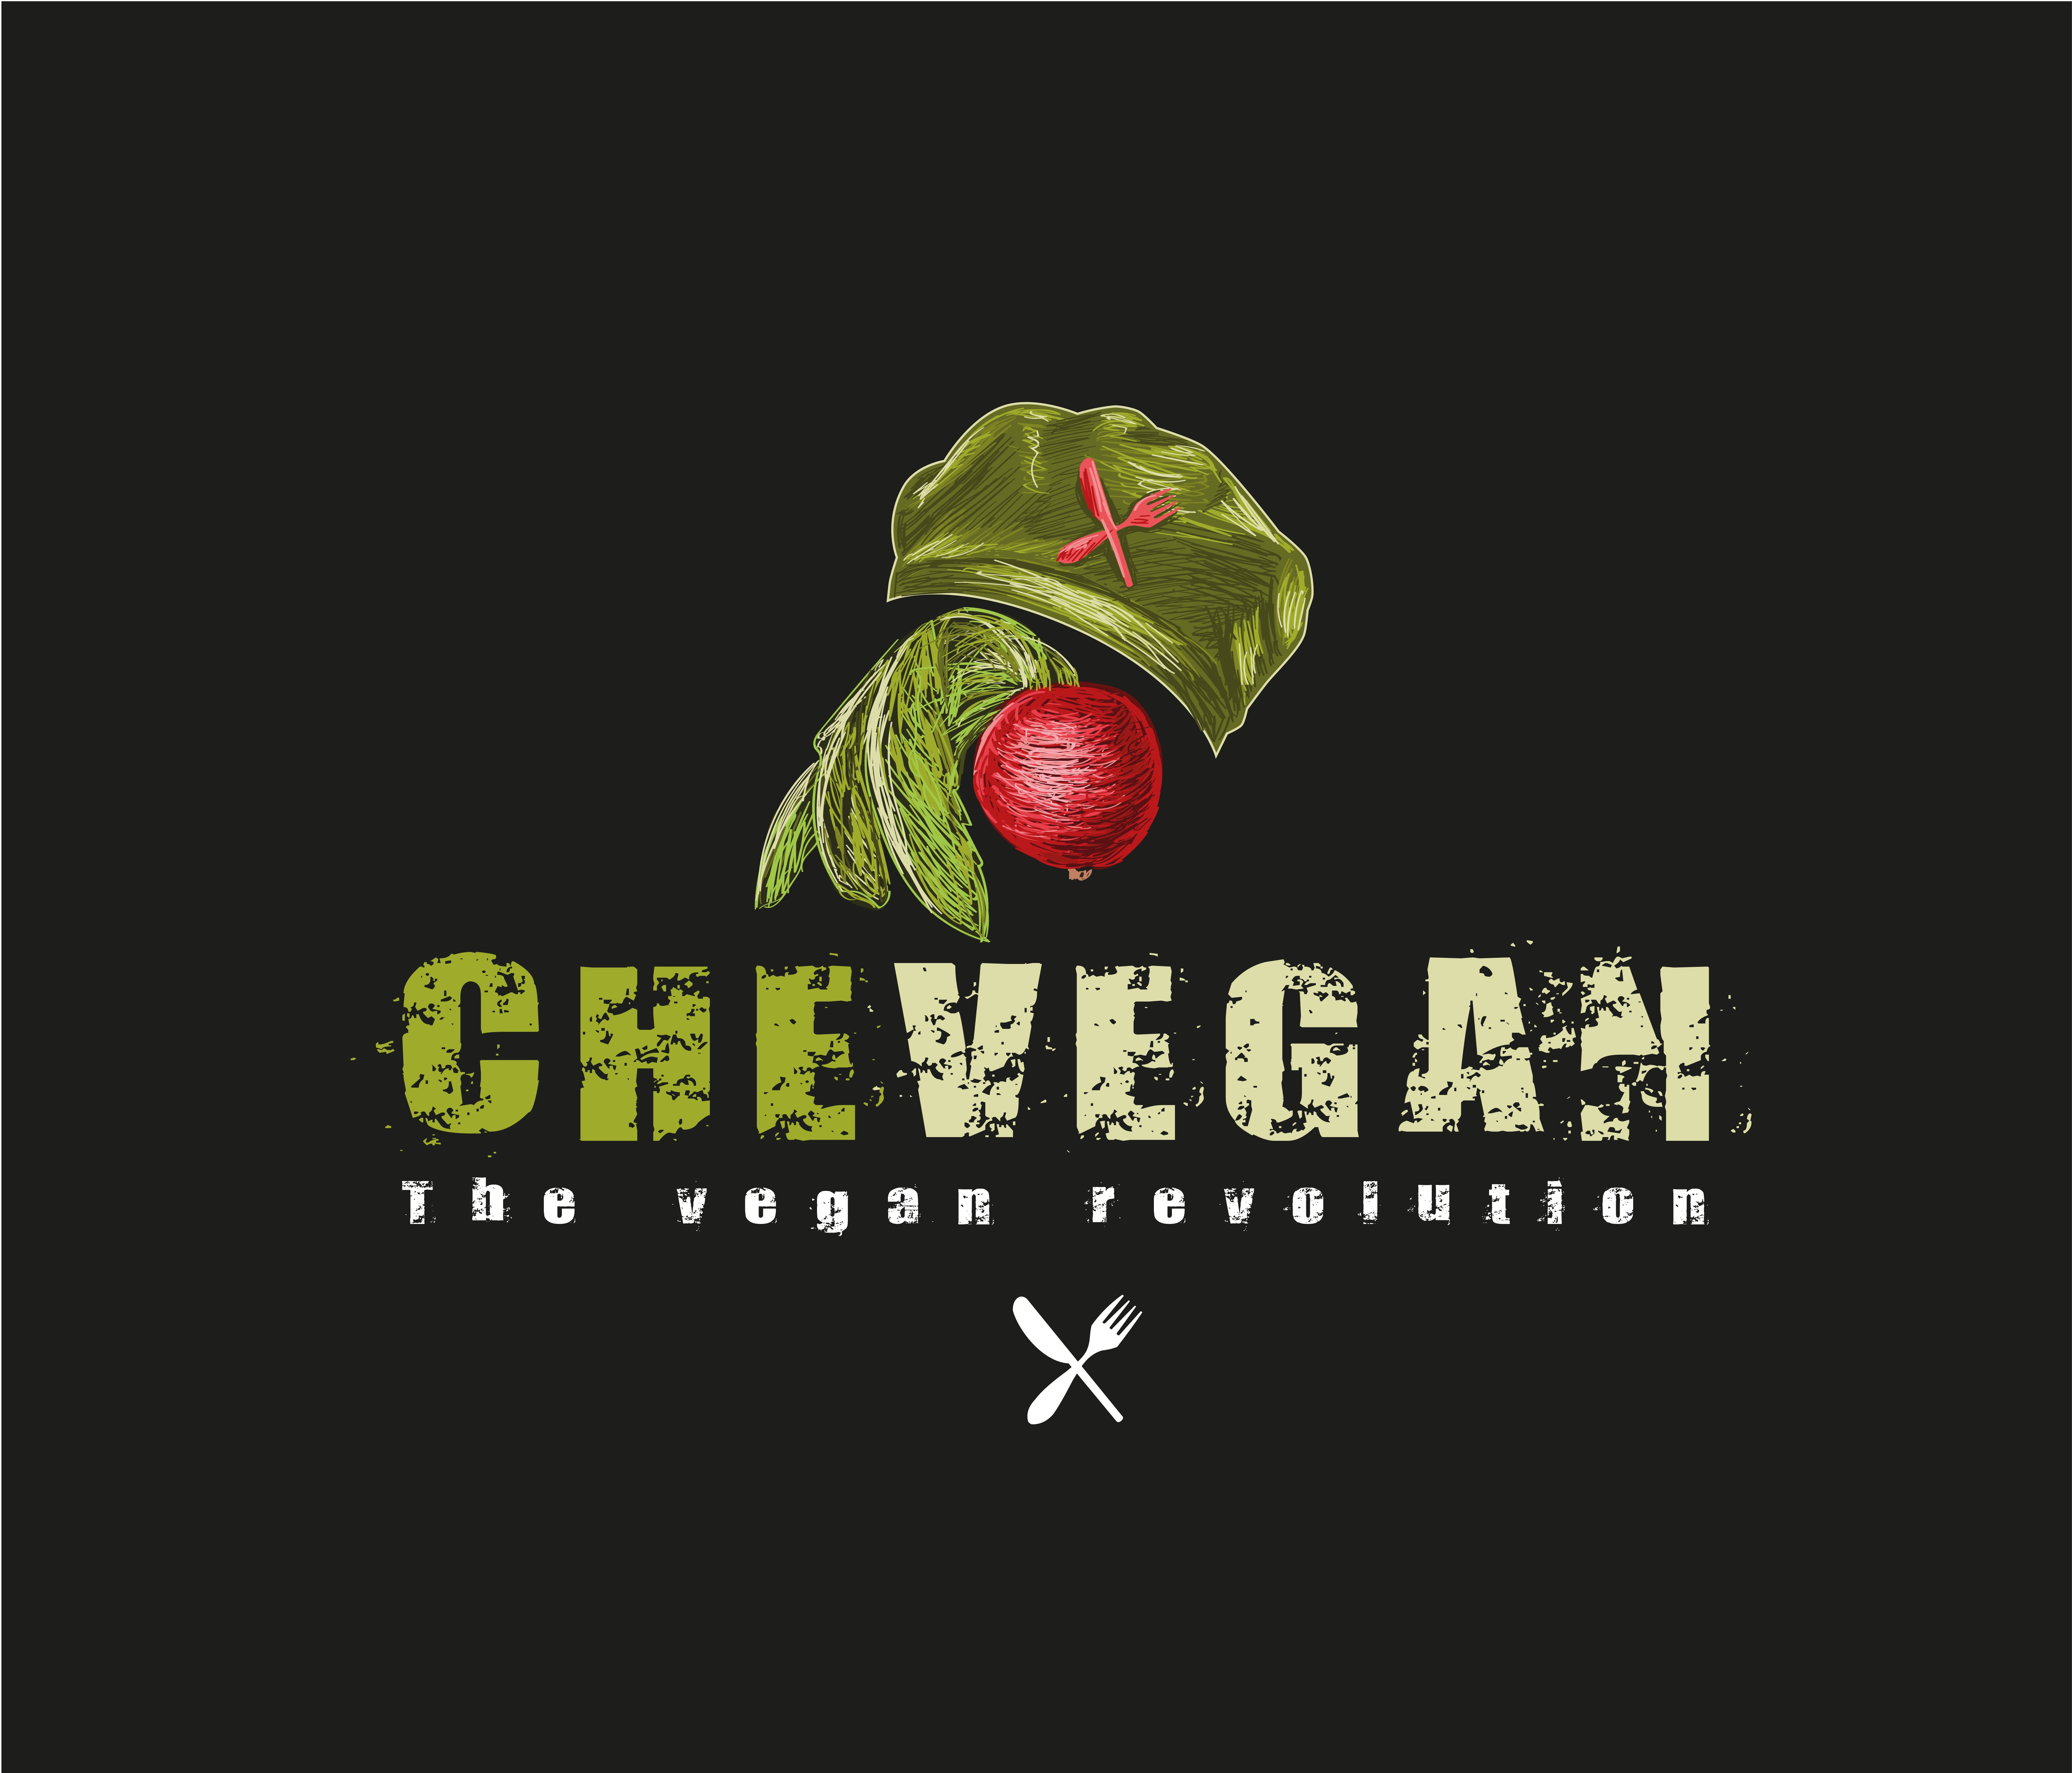 Please design a logo that is revolutionary and fits to the theme of Che Guevara. The vegan revolution.